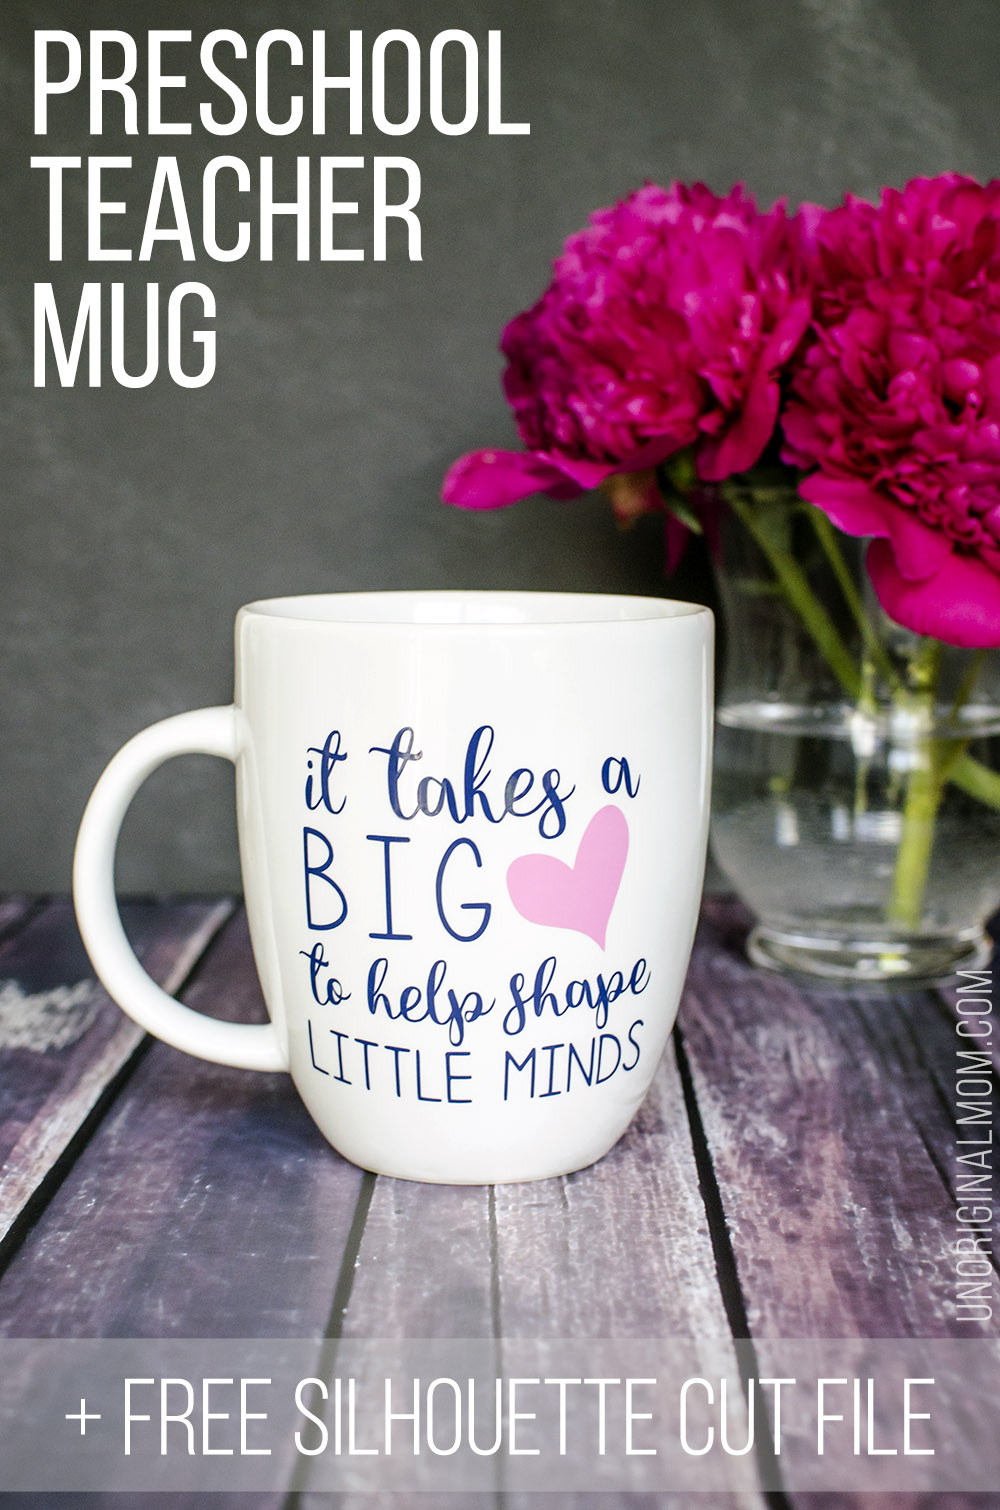 """It Takes a Big Heart to Help Shape Little Minds"" - preschool teacher mug gift! What a meaningful and adorable diy teacher gift idea for preschool or Kindergarten teachers. Free Silhouette cut file, too! 